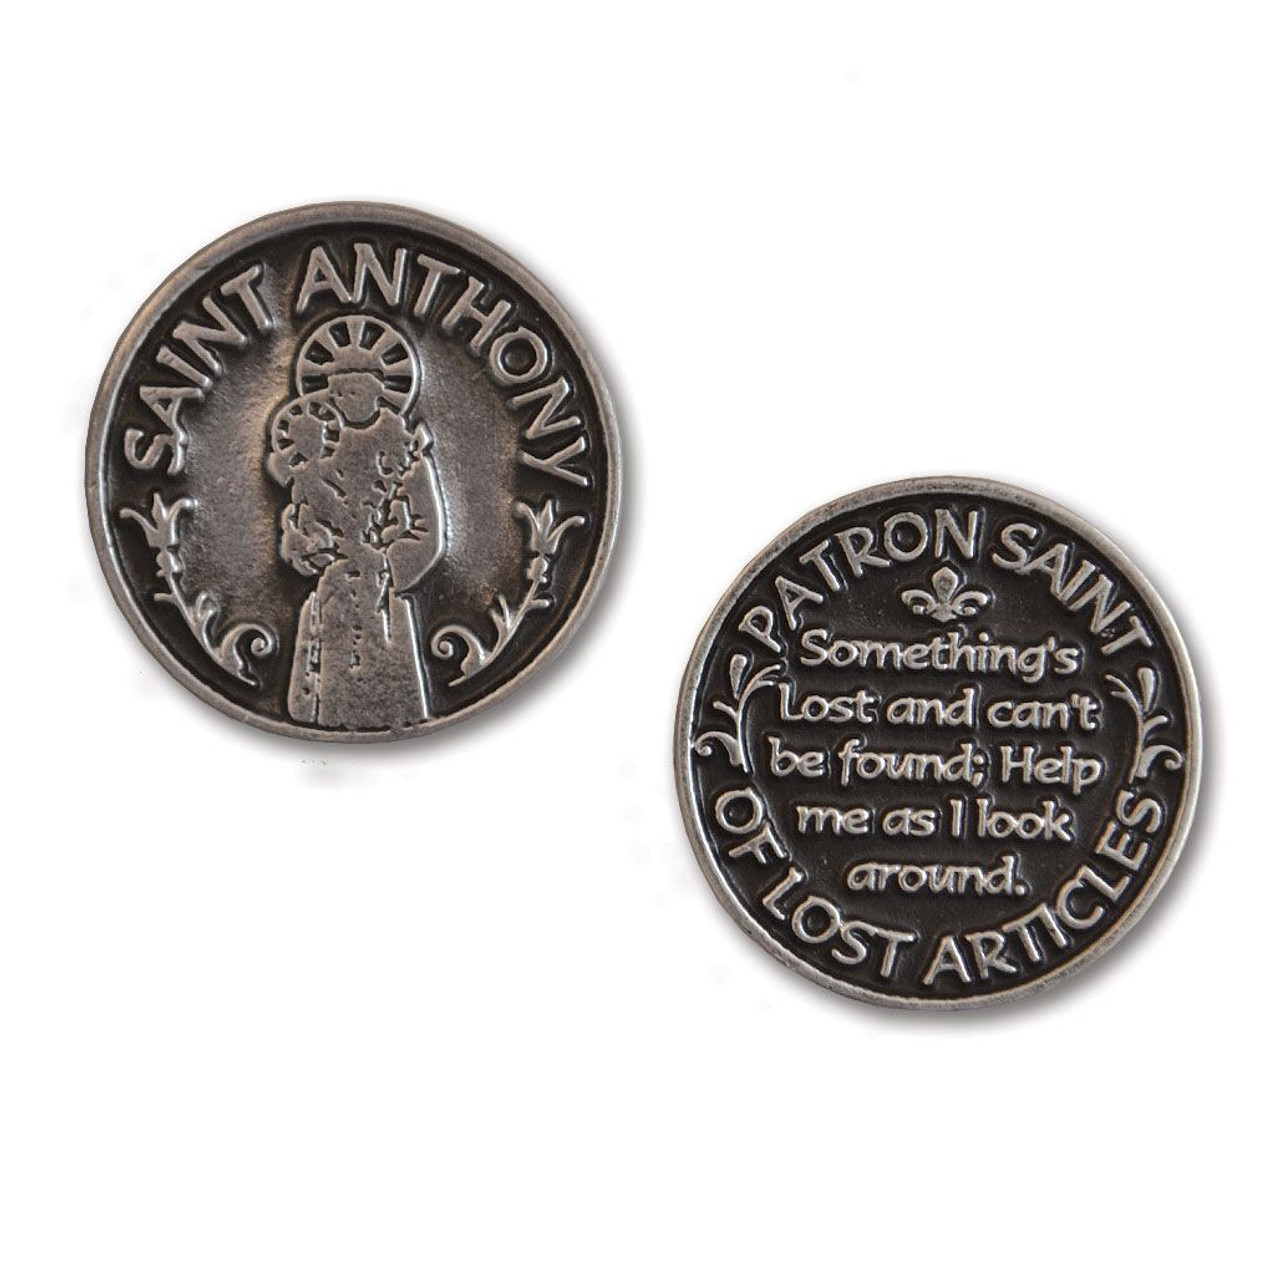 St Anthony Pocket Token